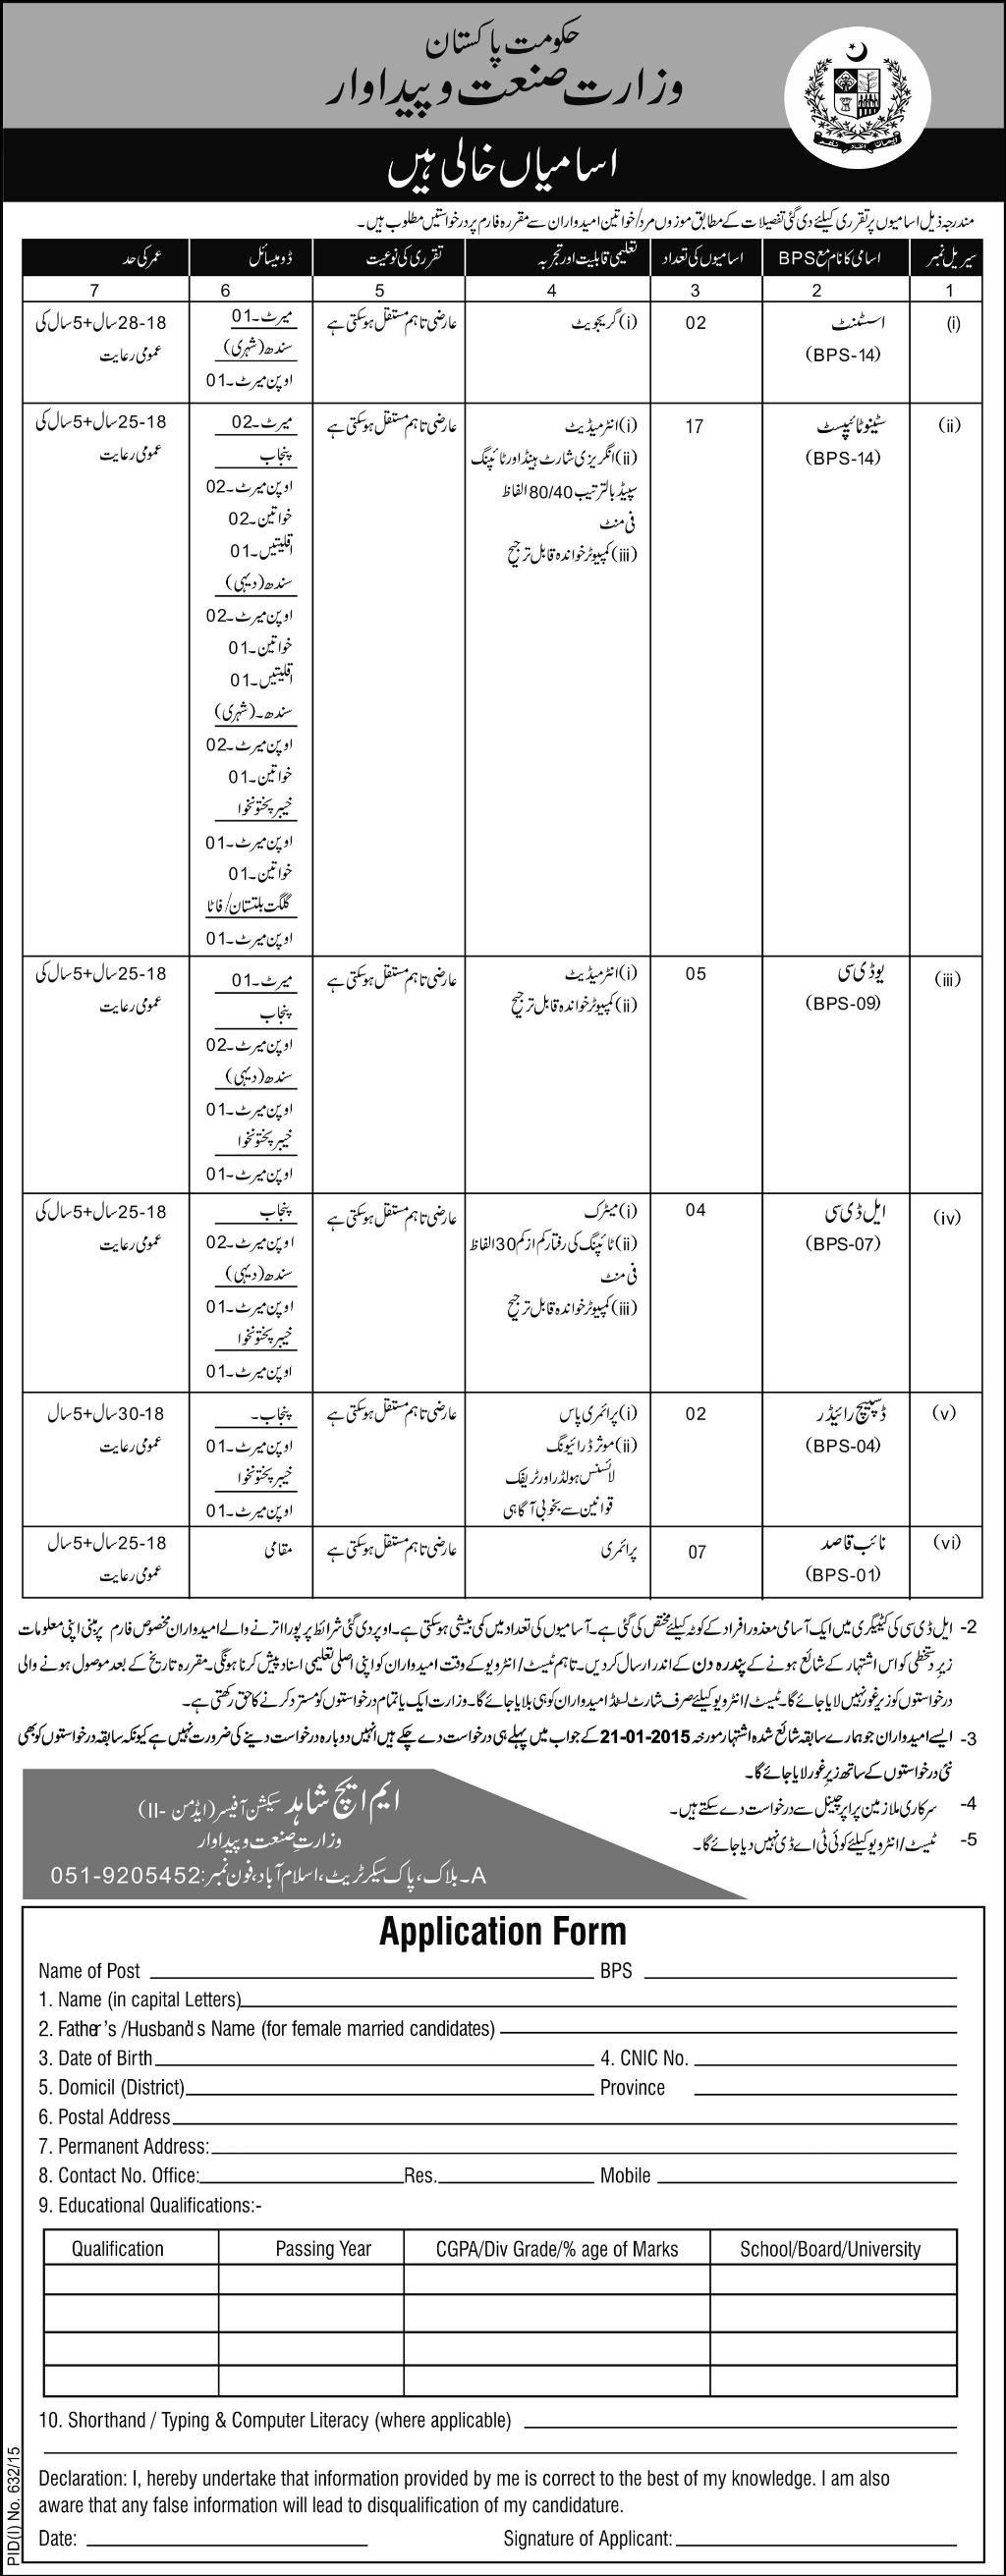 Jobs In Ministry Of Industries And Production Pakistan 2019 Advertisement